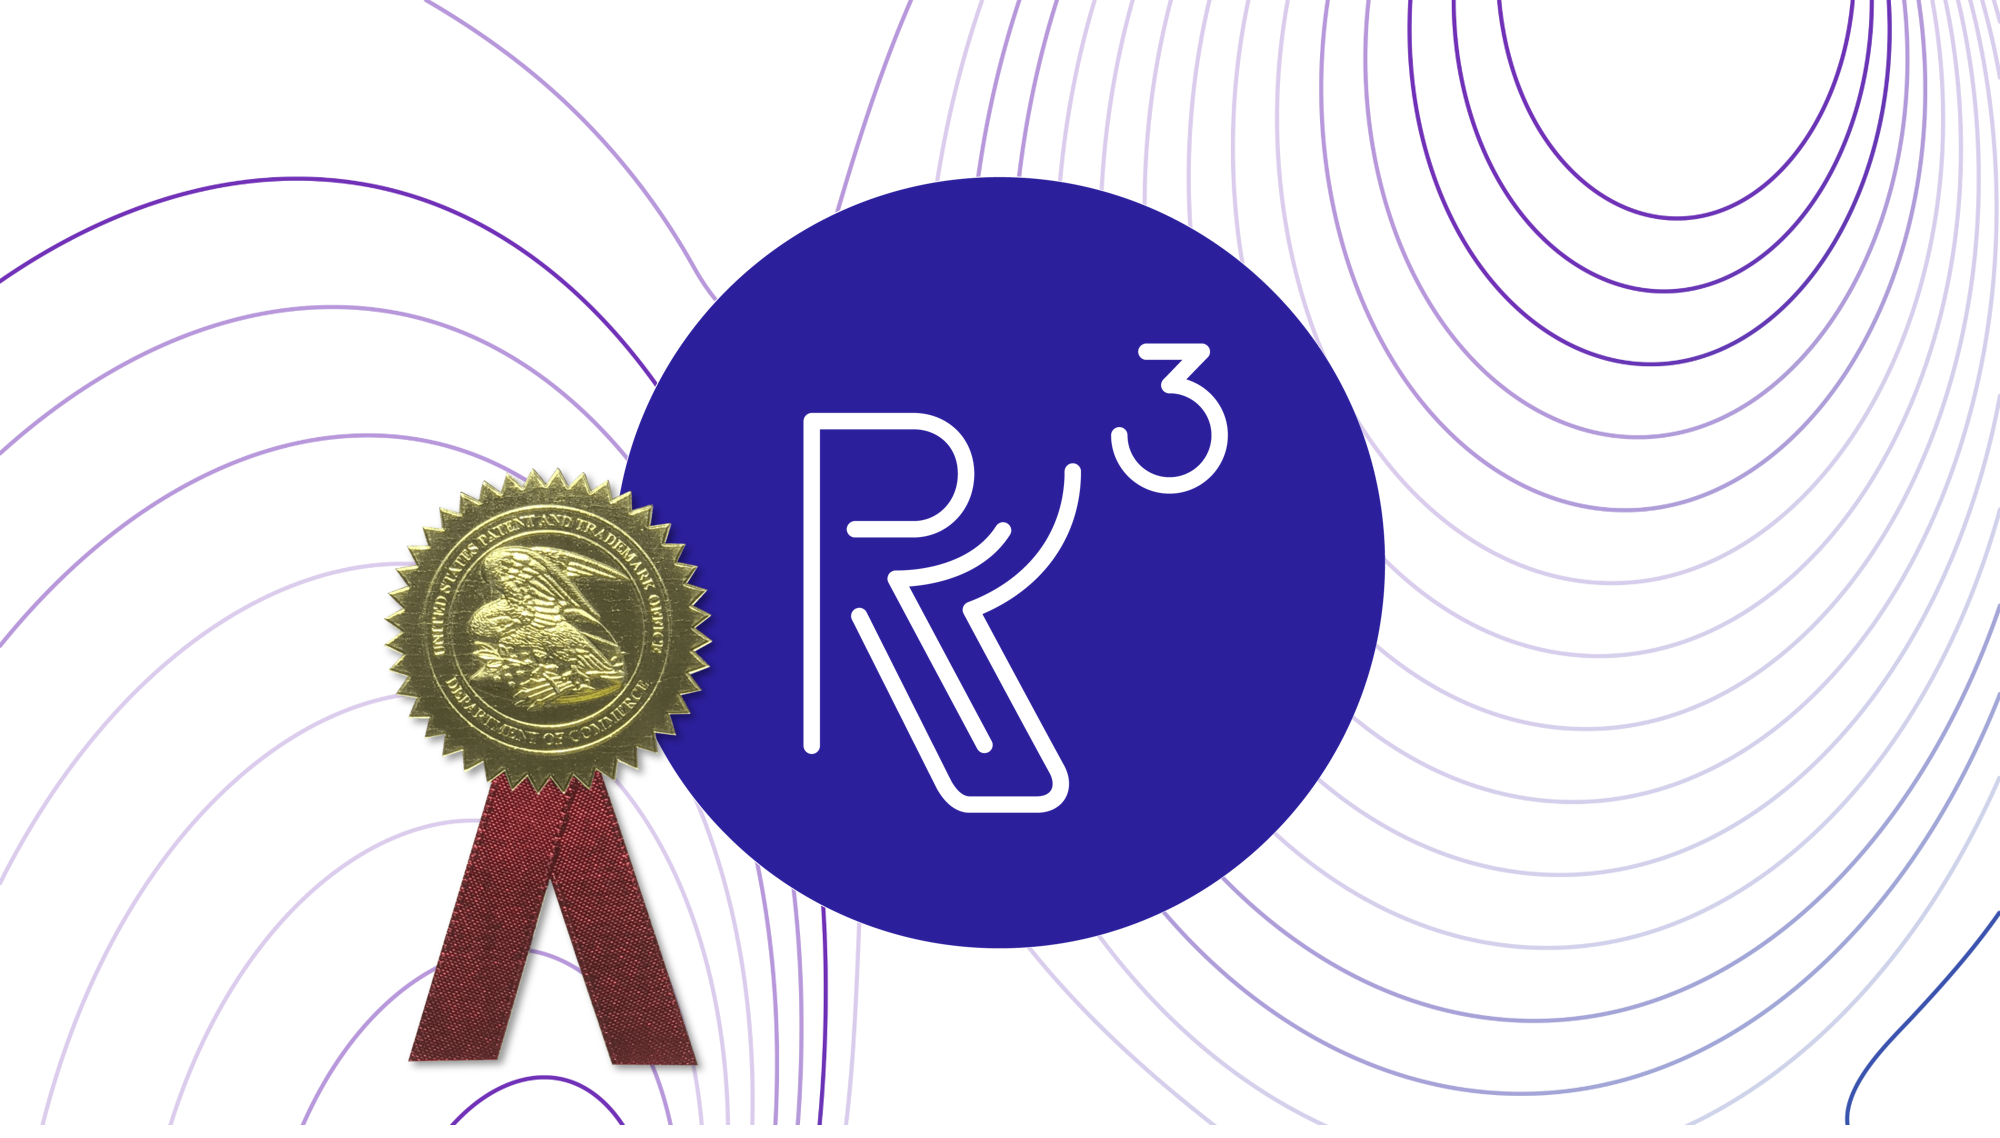 R3 Printing has been granted a utility patent!